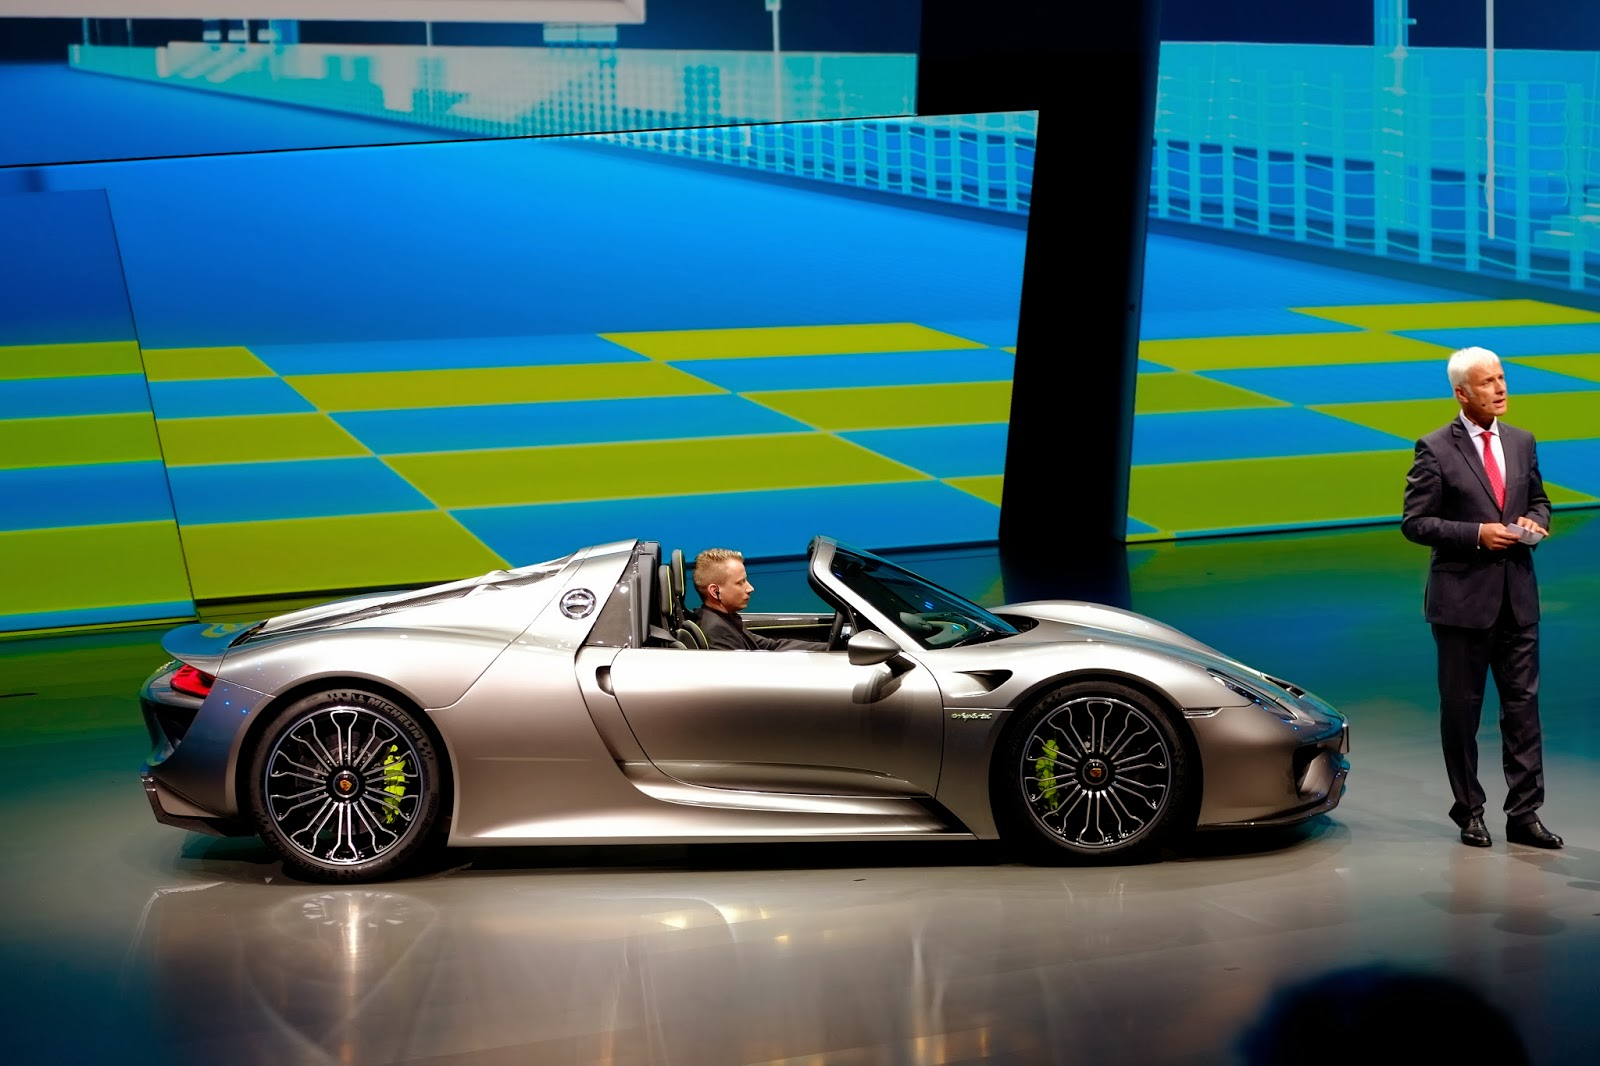 porsche 918 spyder full and complete specs ticktickvroom car blog and watch blog. Black Bedroom Furniture Sets. Home Design Ideas